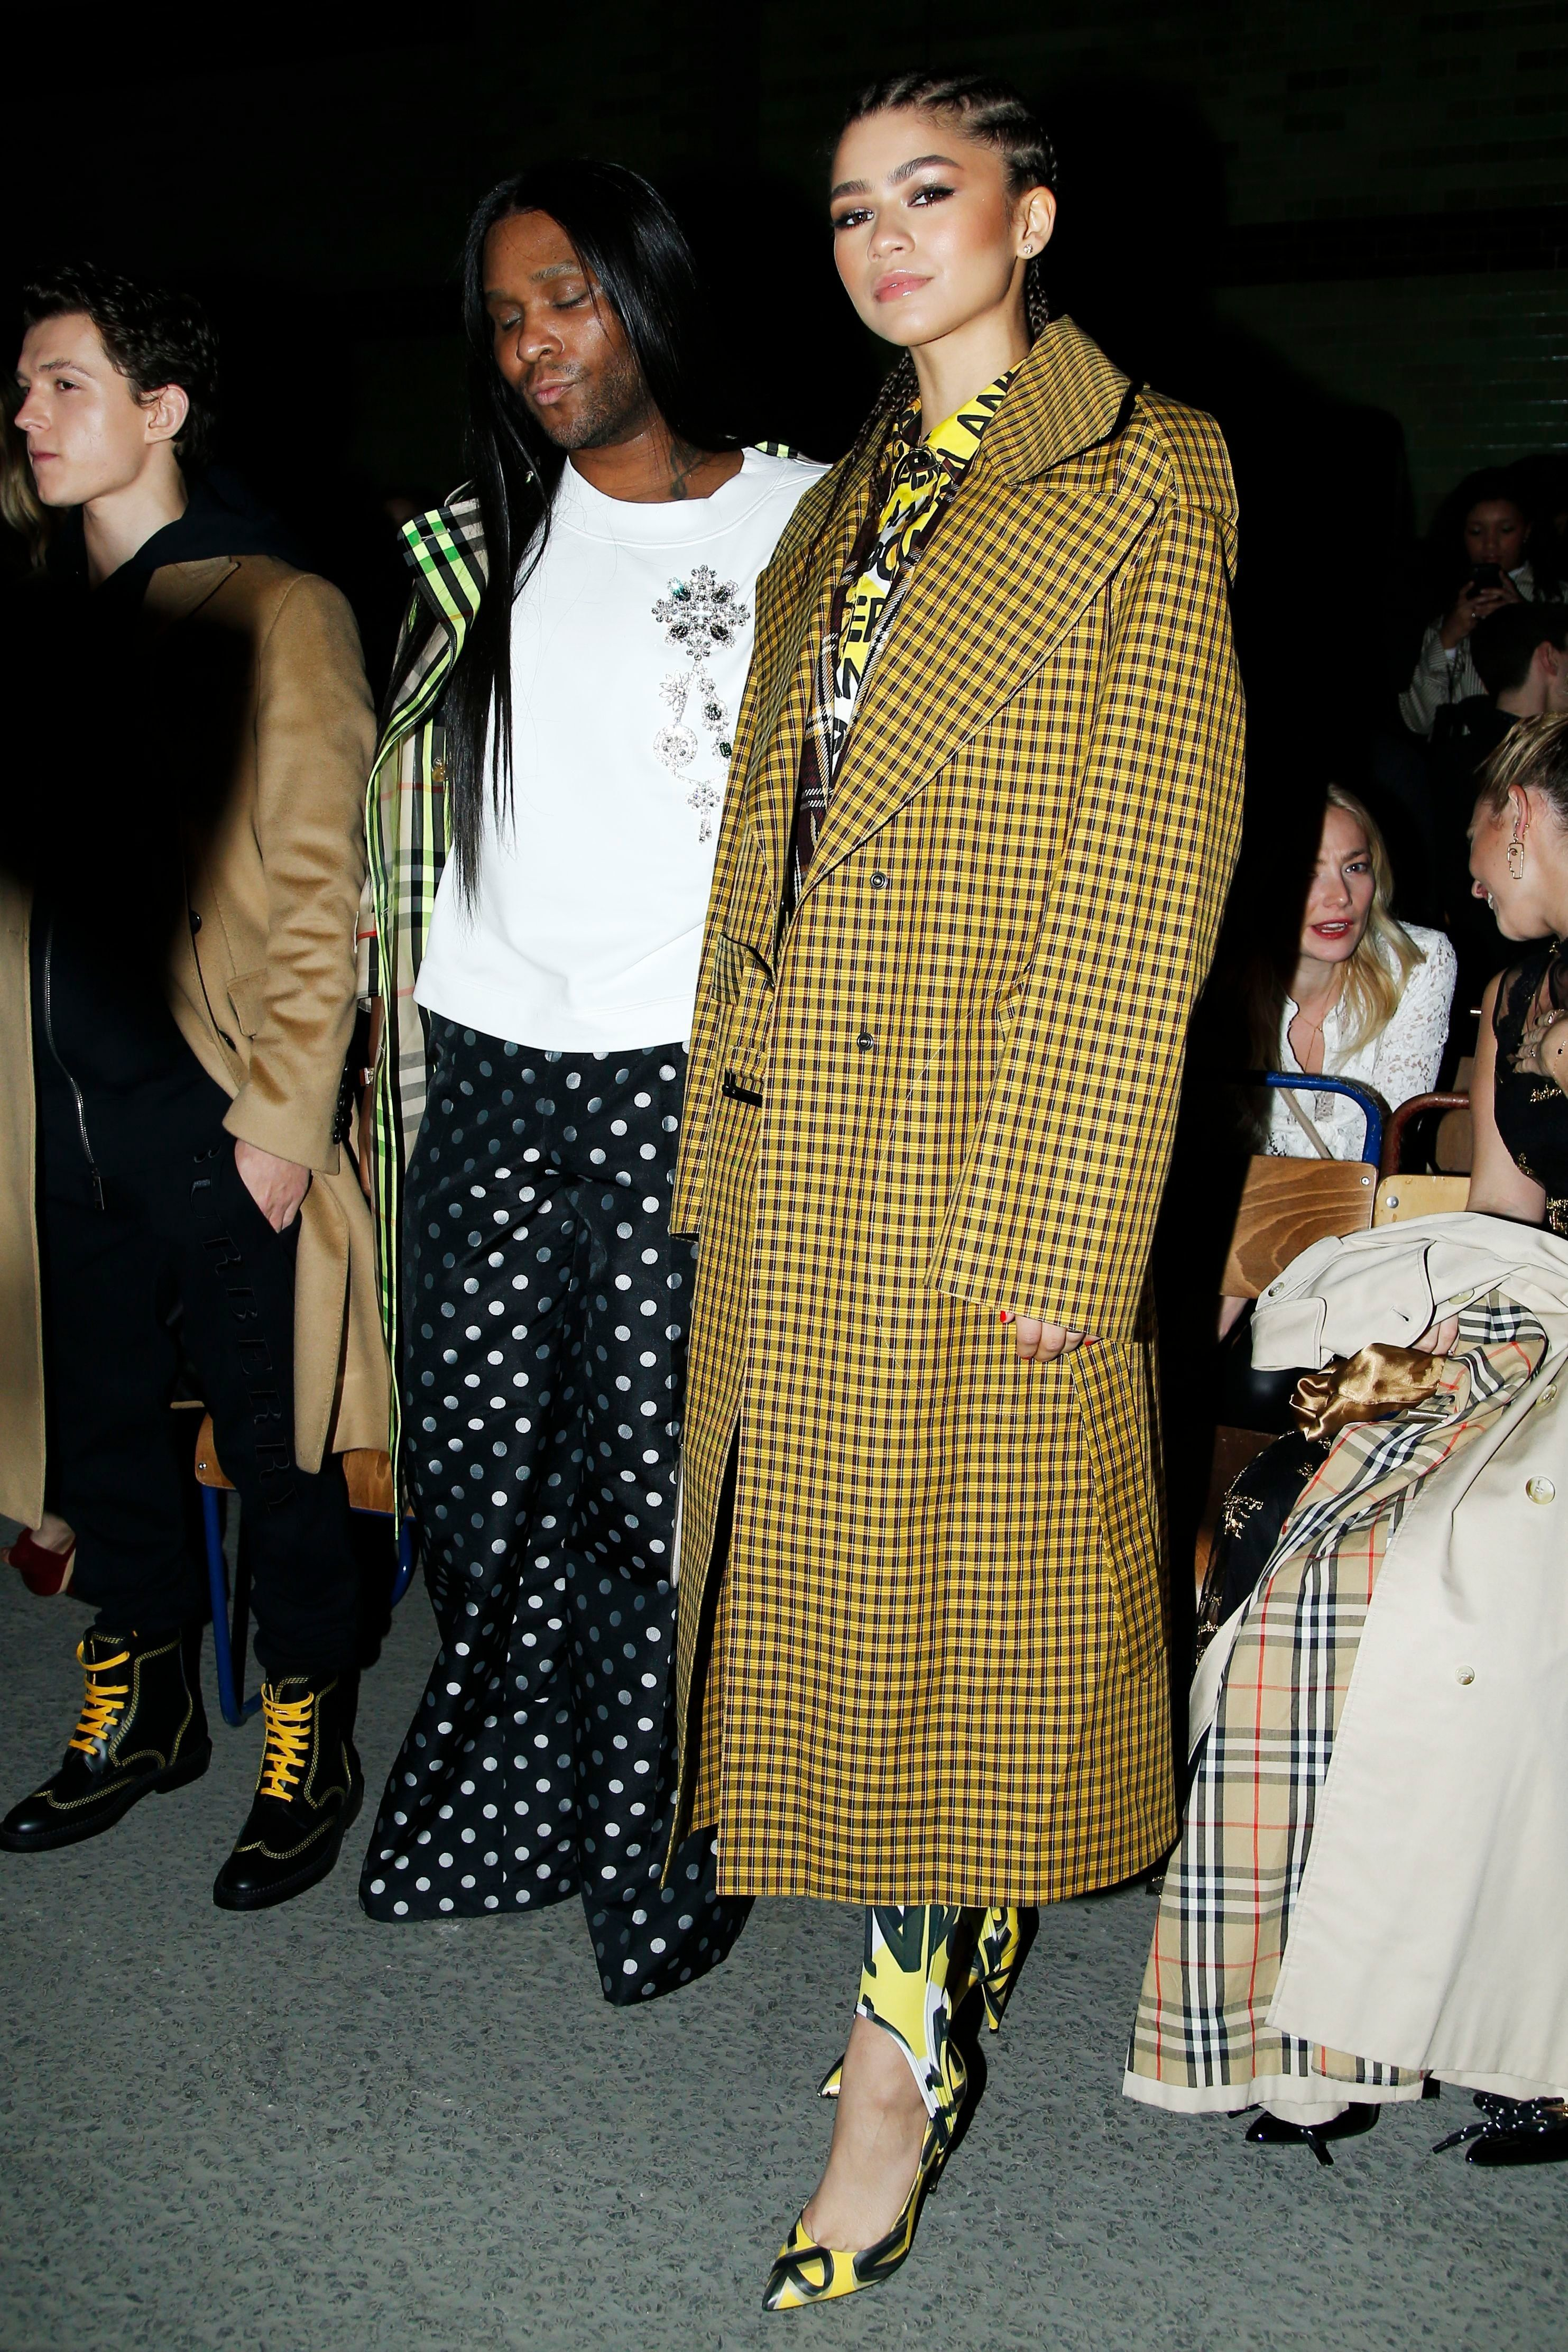 Zendaya and tom holland the burberry fashion show during the london fashion week in london - Burberry fashion show ...